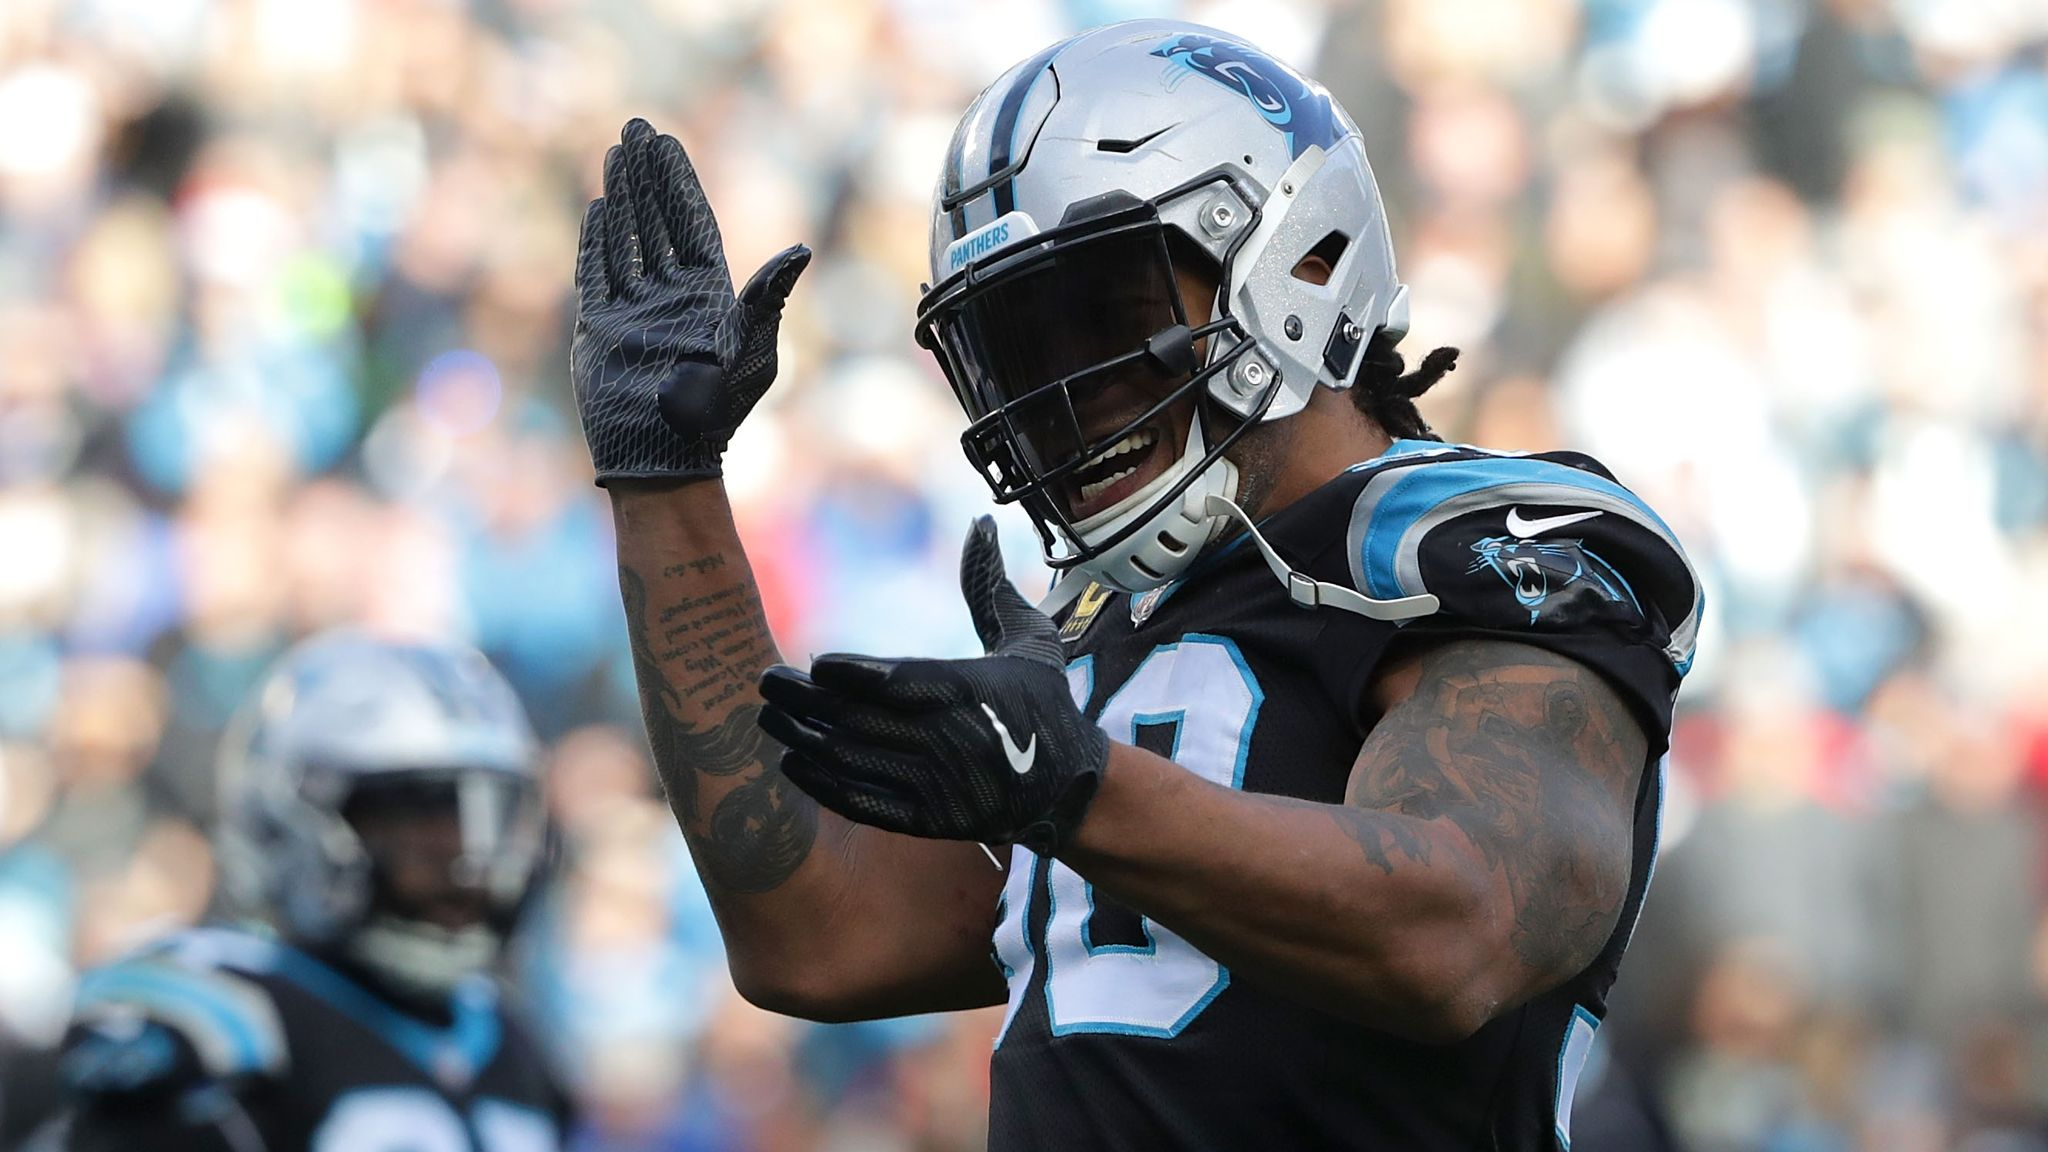 Ron Rivera Chase Young Built Like Julius Peppers Reminds Me Of Von Miller Nfl News Sky Sports